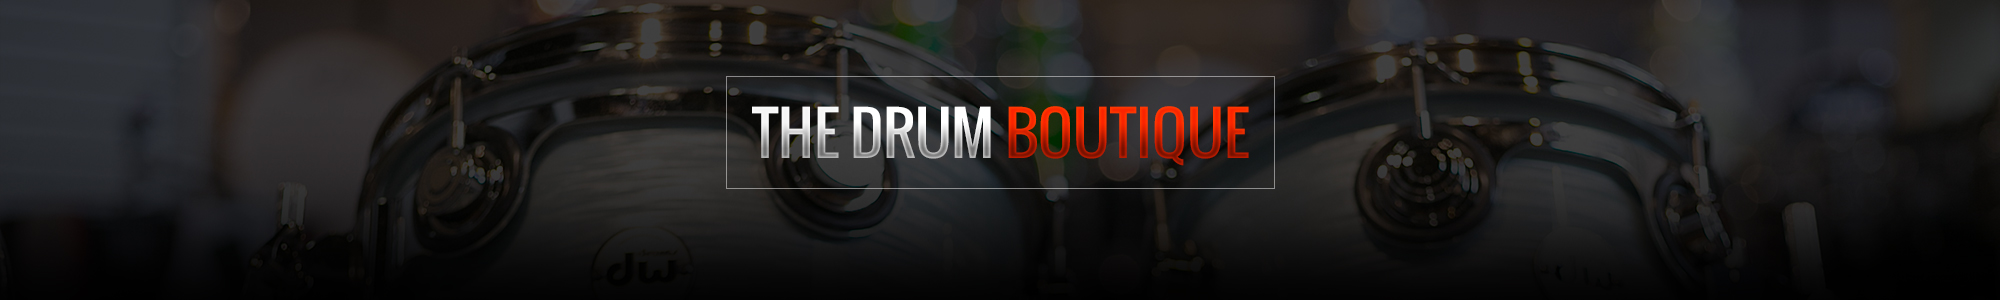 The Drum Boutique